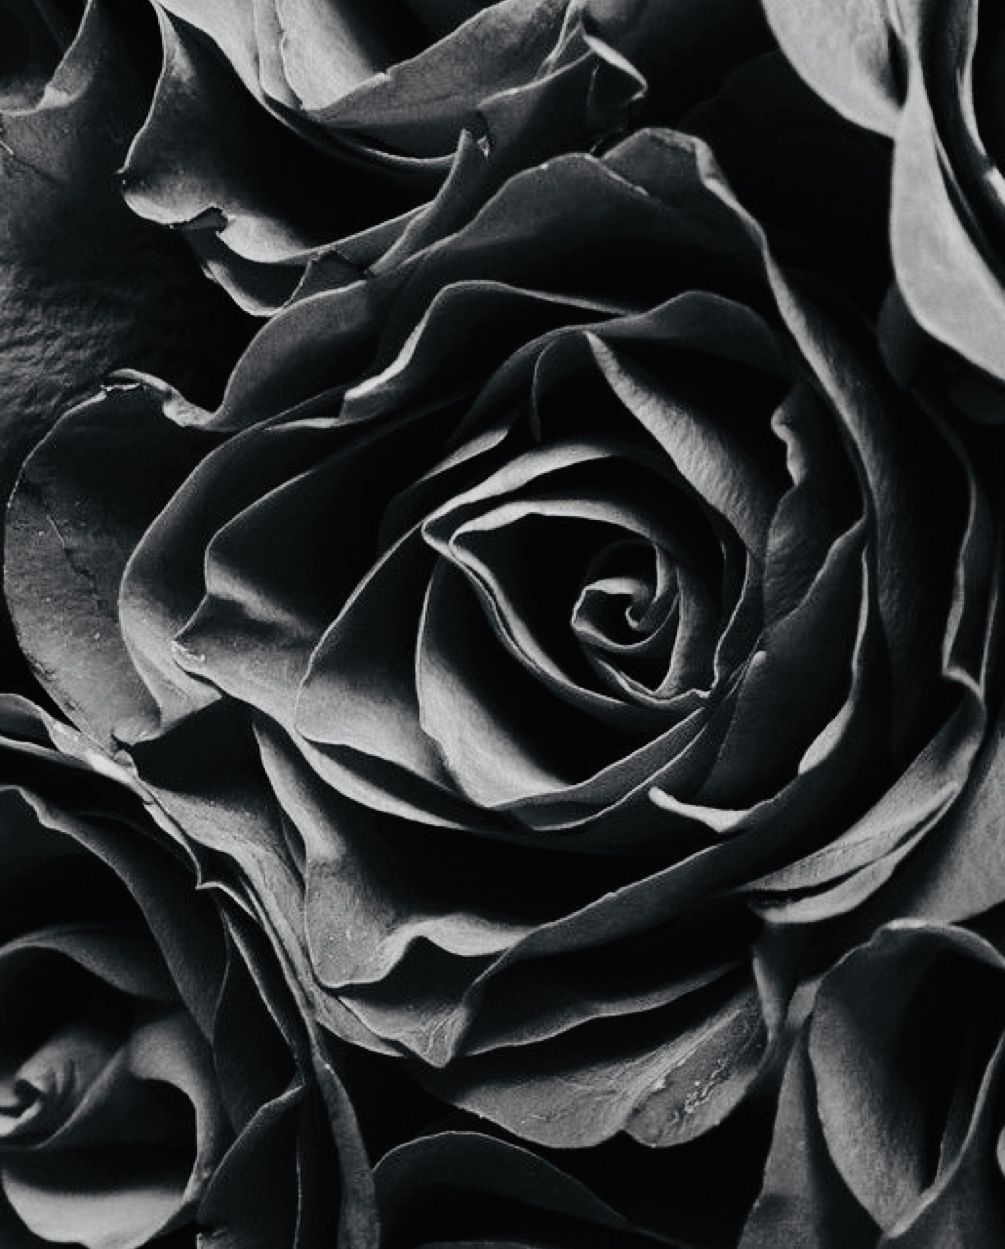 Pin By Rachel Goins On Touches Of Color In 2020 Black Roses Wallpaper Black Rose Rose Images